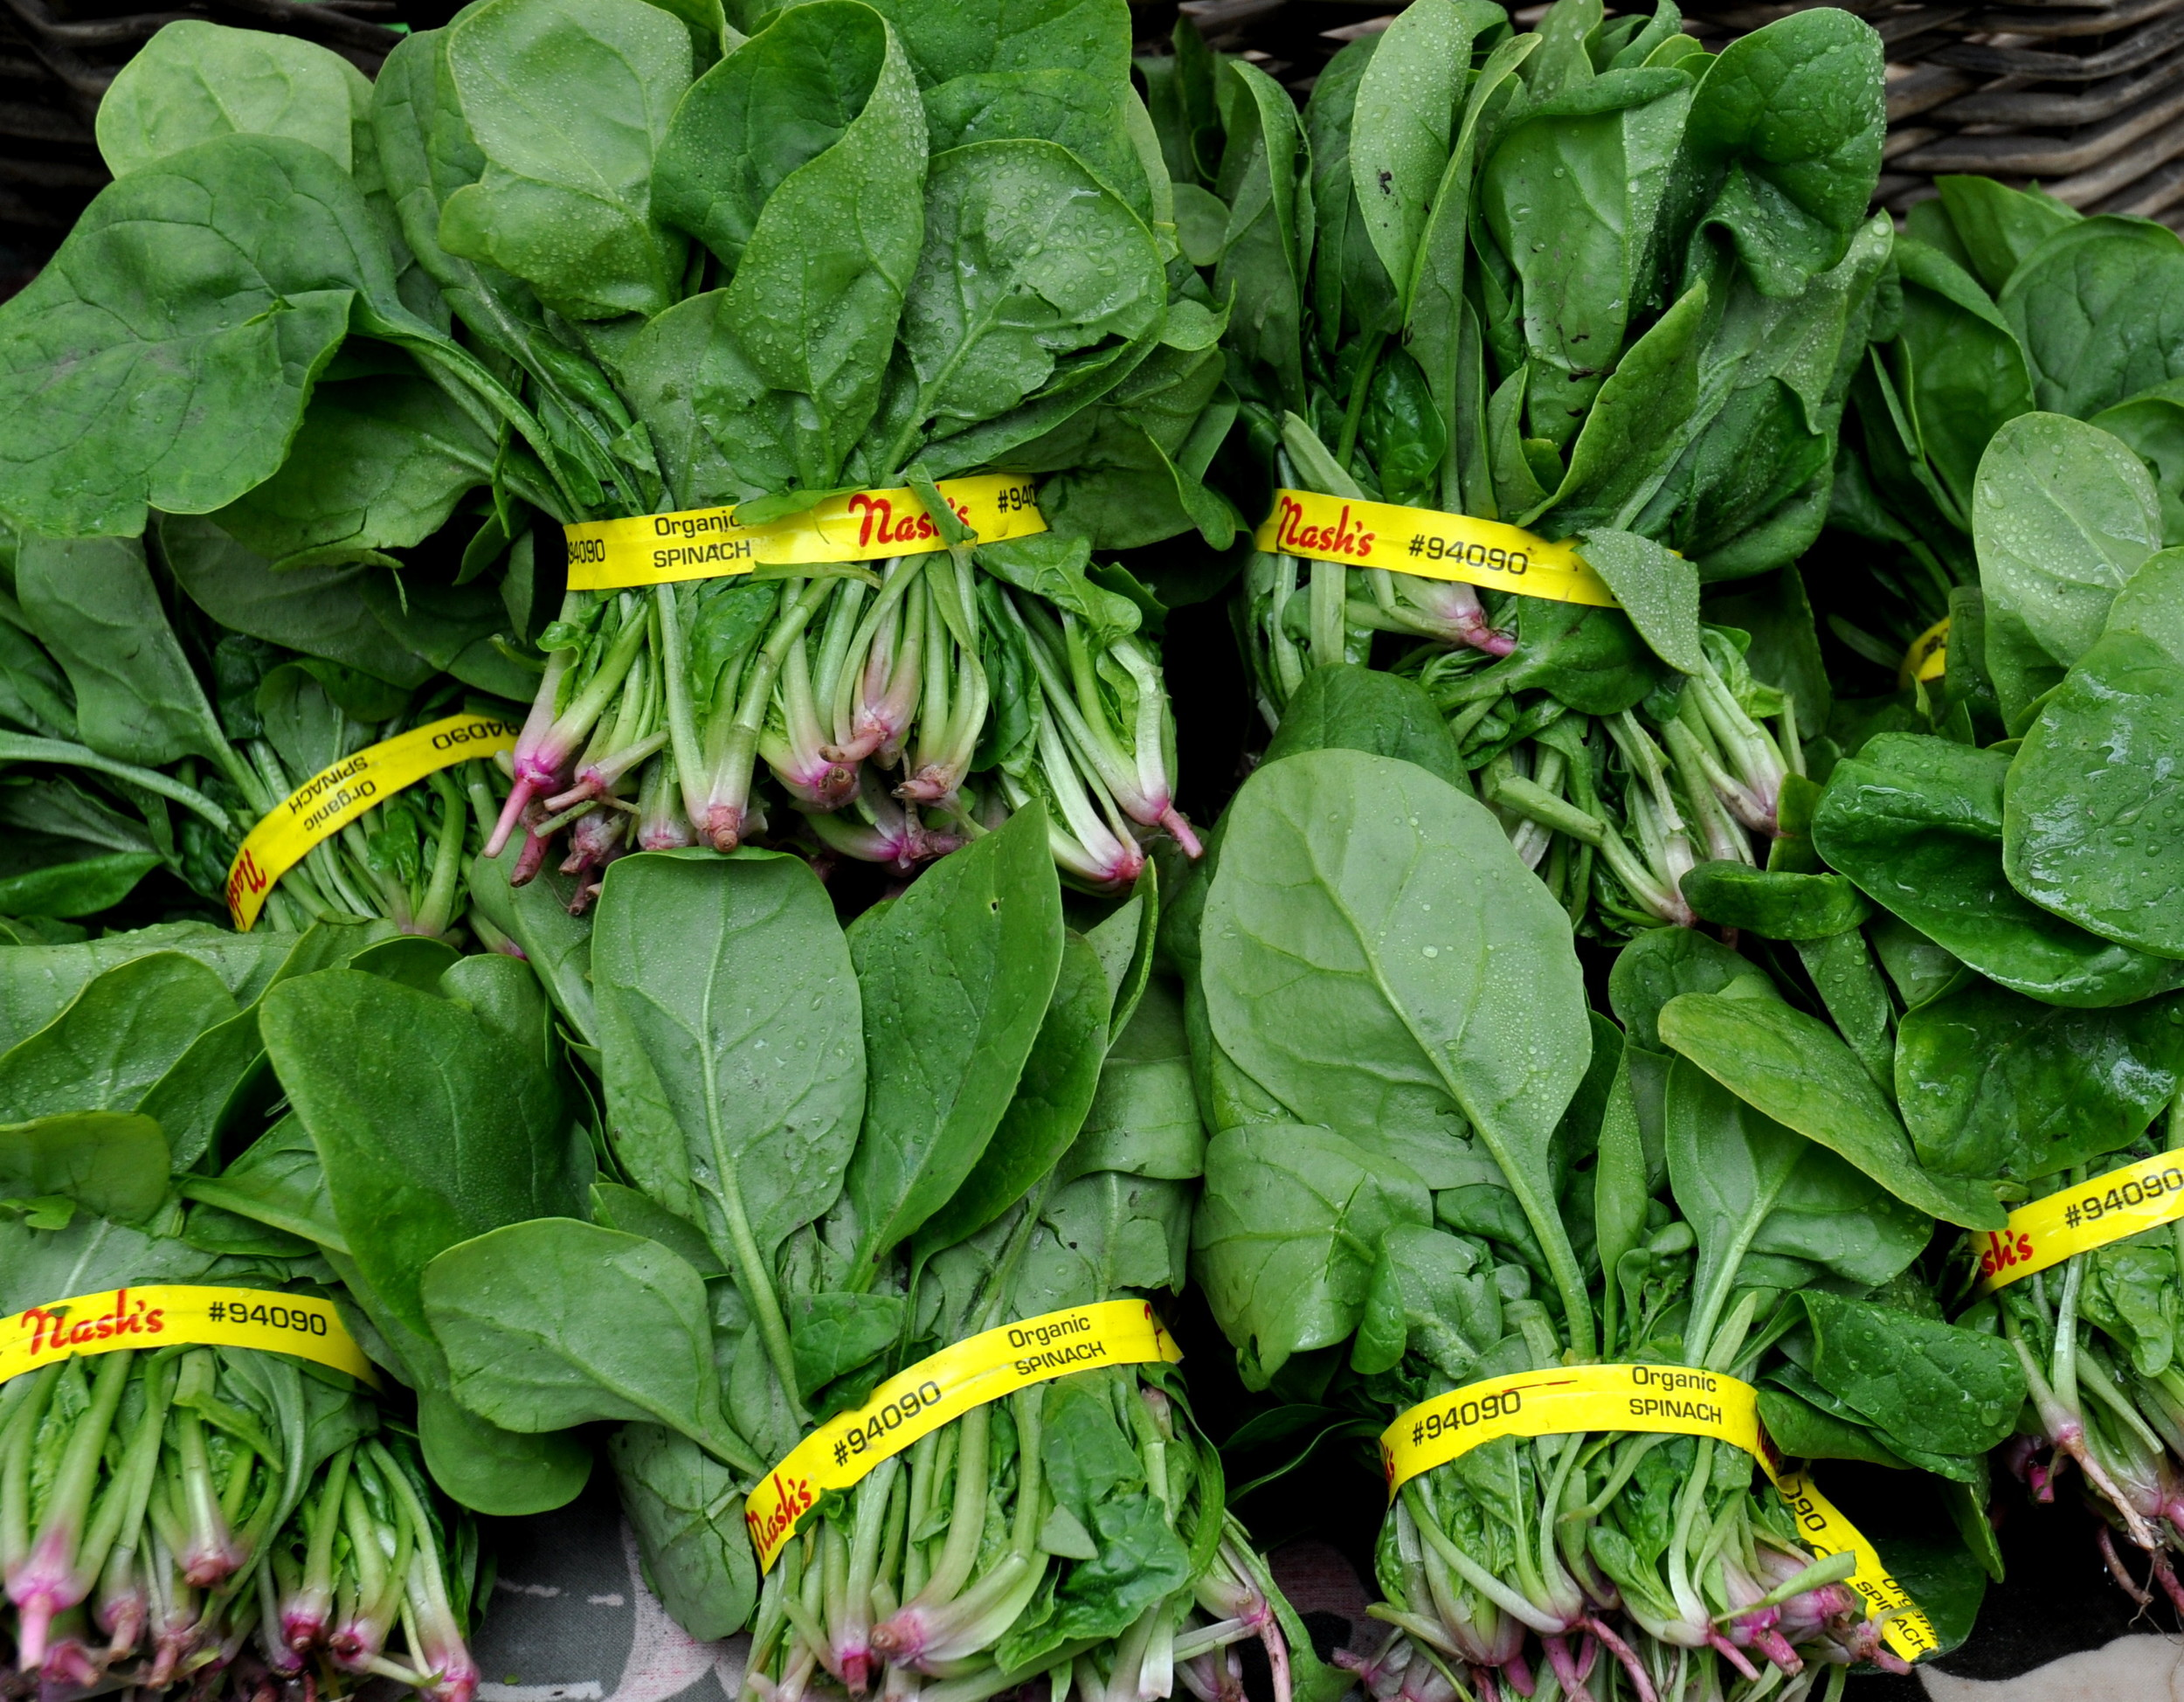 Fresh spinach from Nash's Organic Produce. Photo copyright 2012 by Zachary D. Lyons.